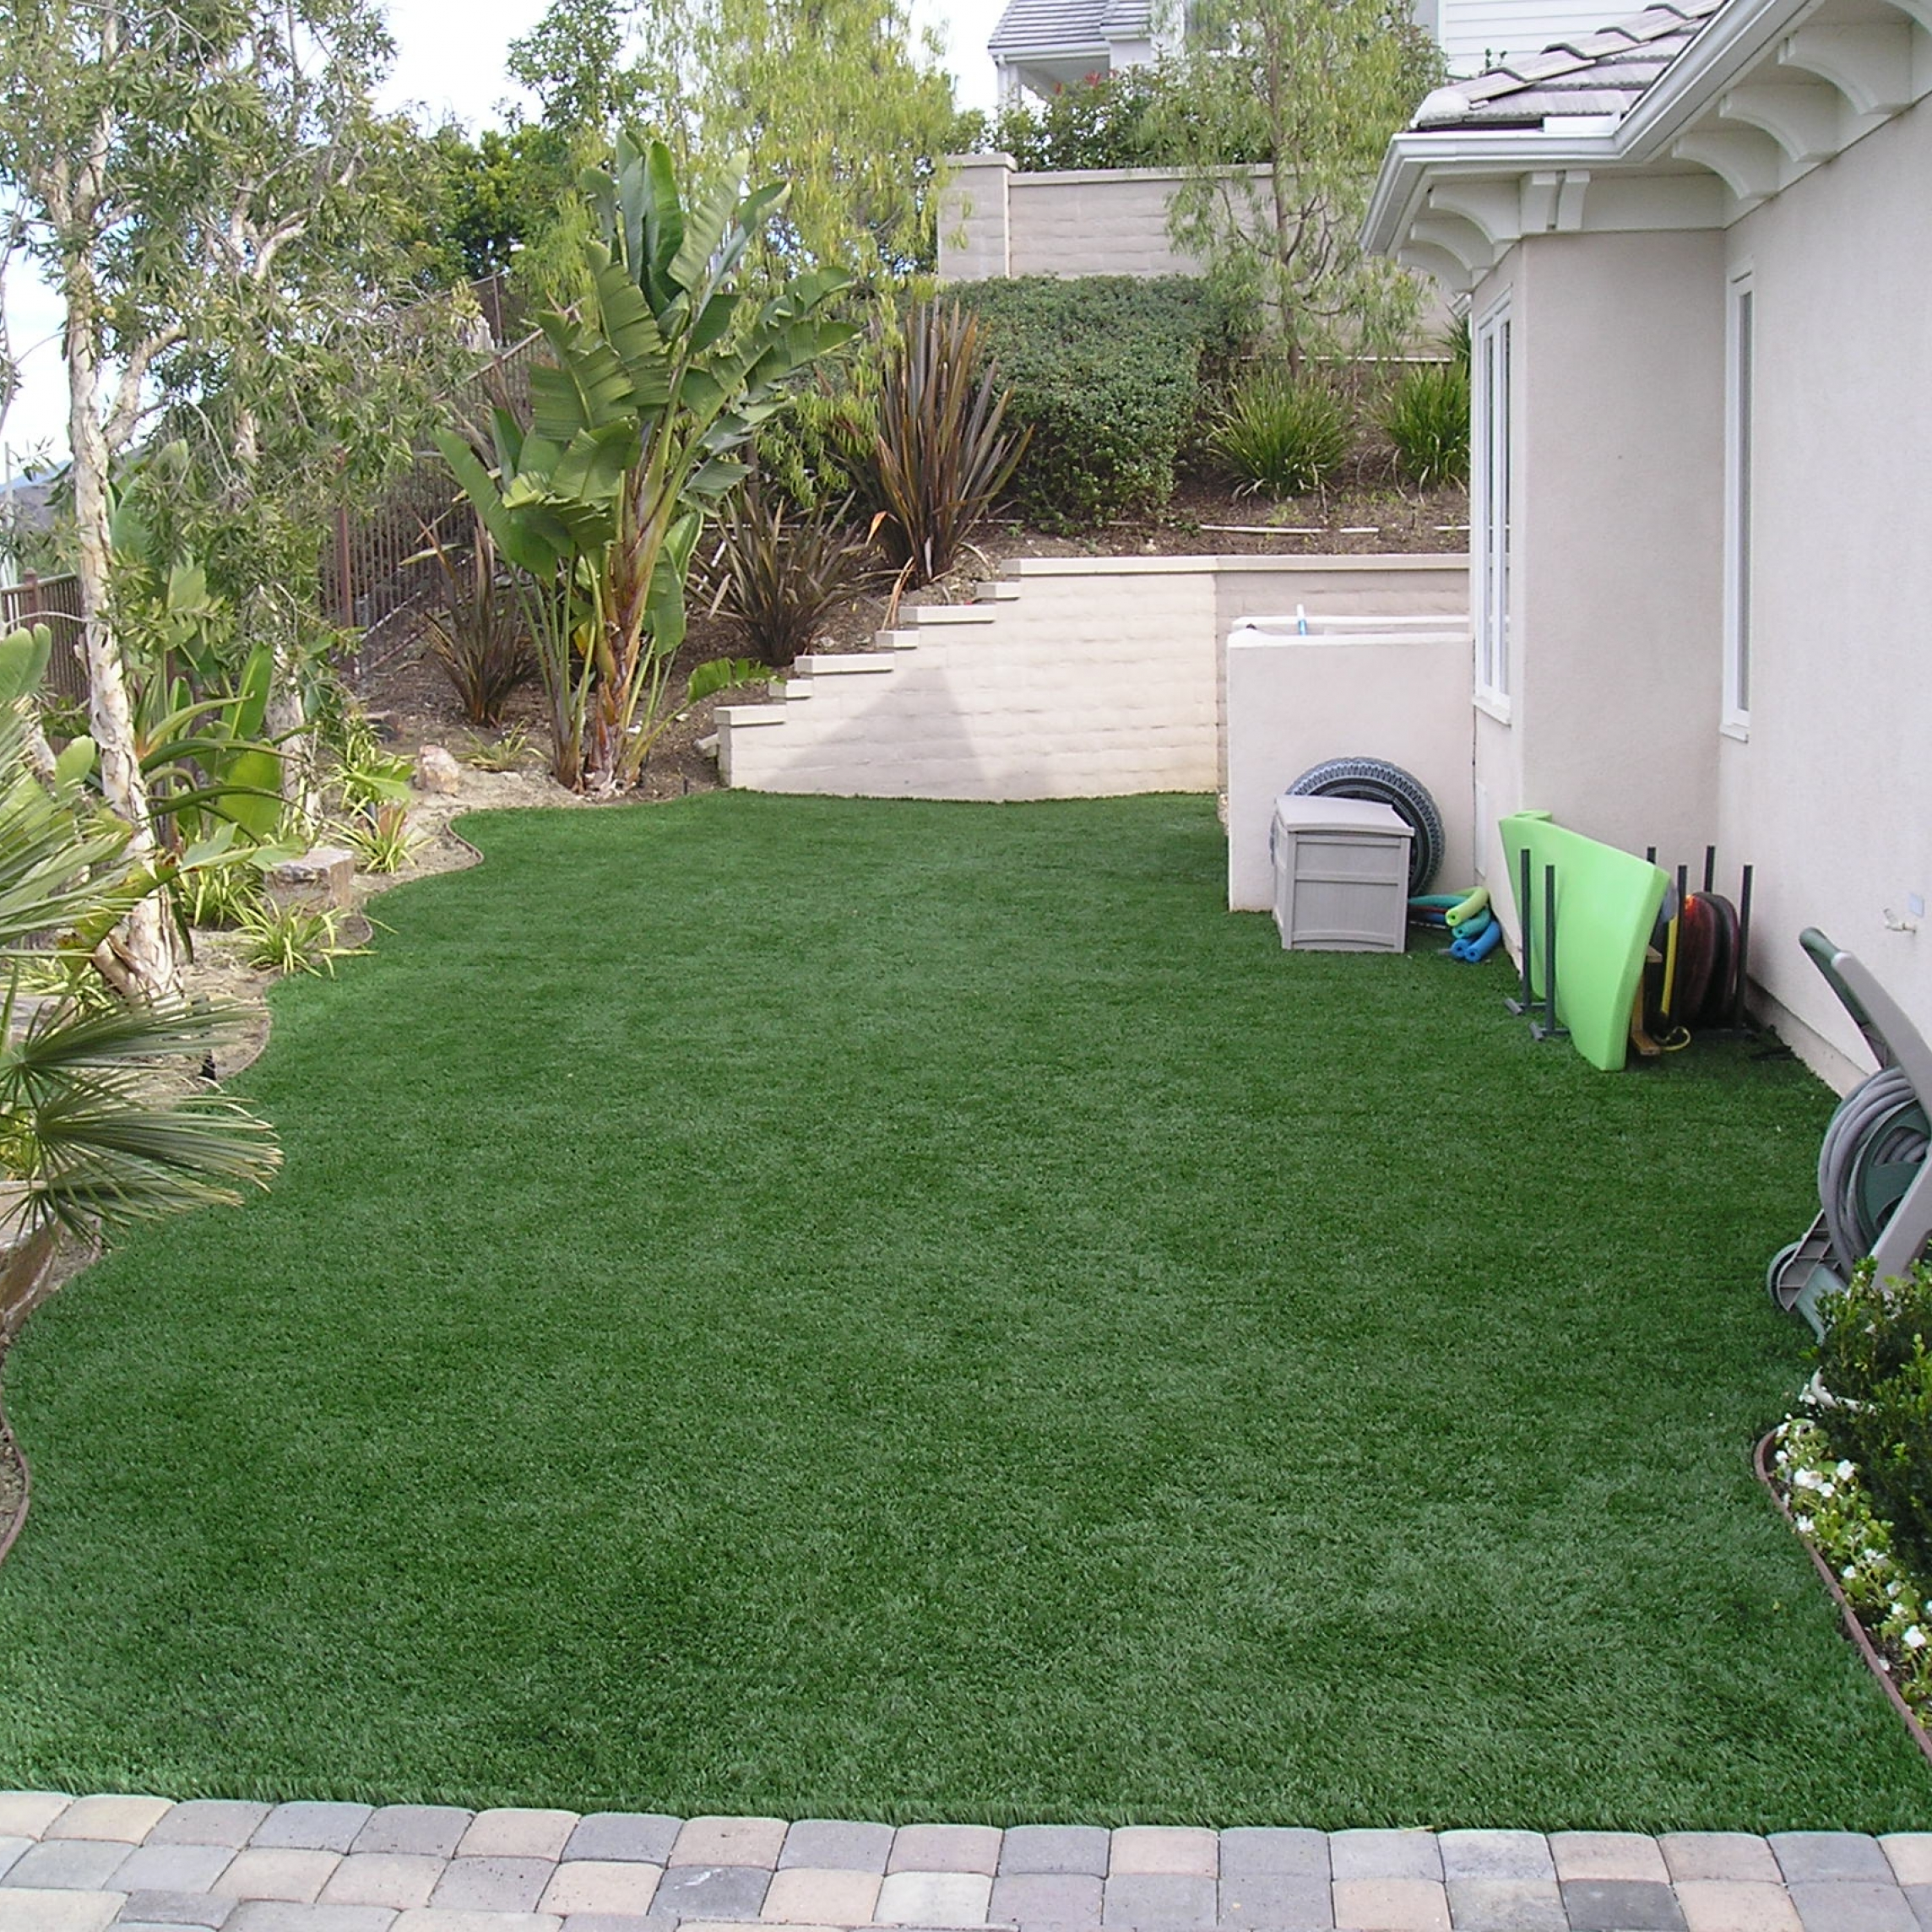 S Blade 50 most realistic artificial grass,realistic artificial grass